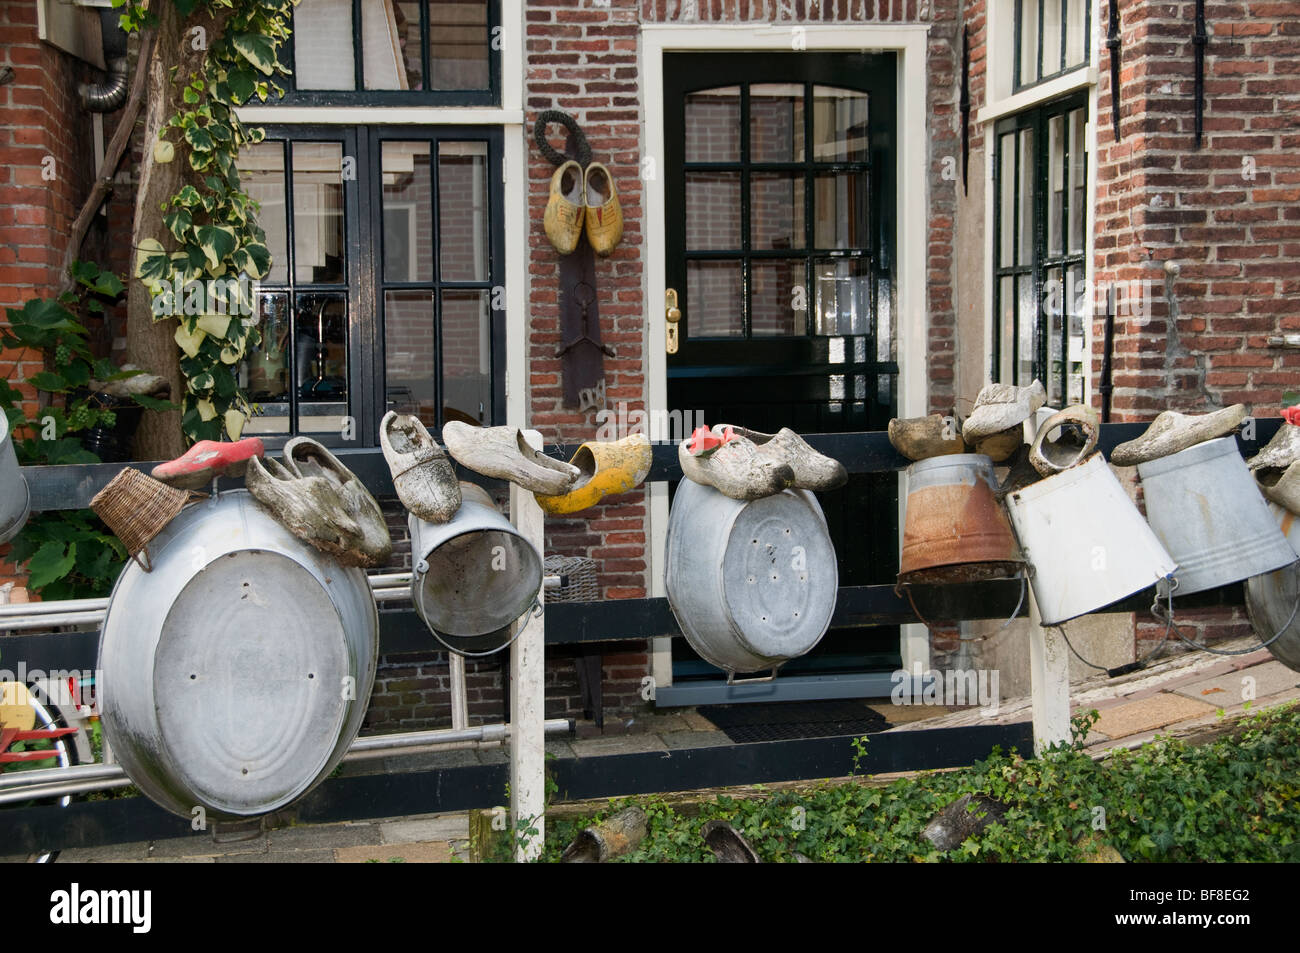 Edam Netherlands North Holland historic town - Stock Image